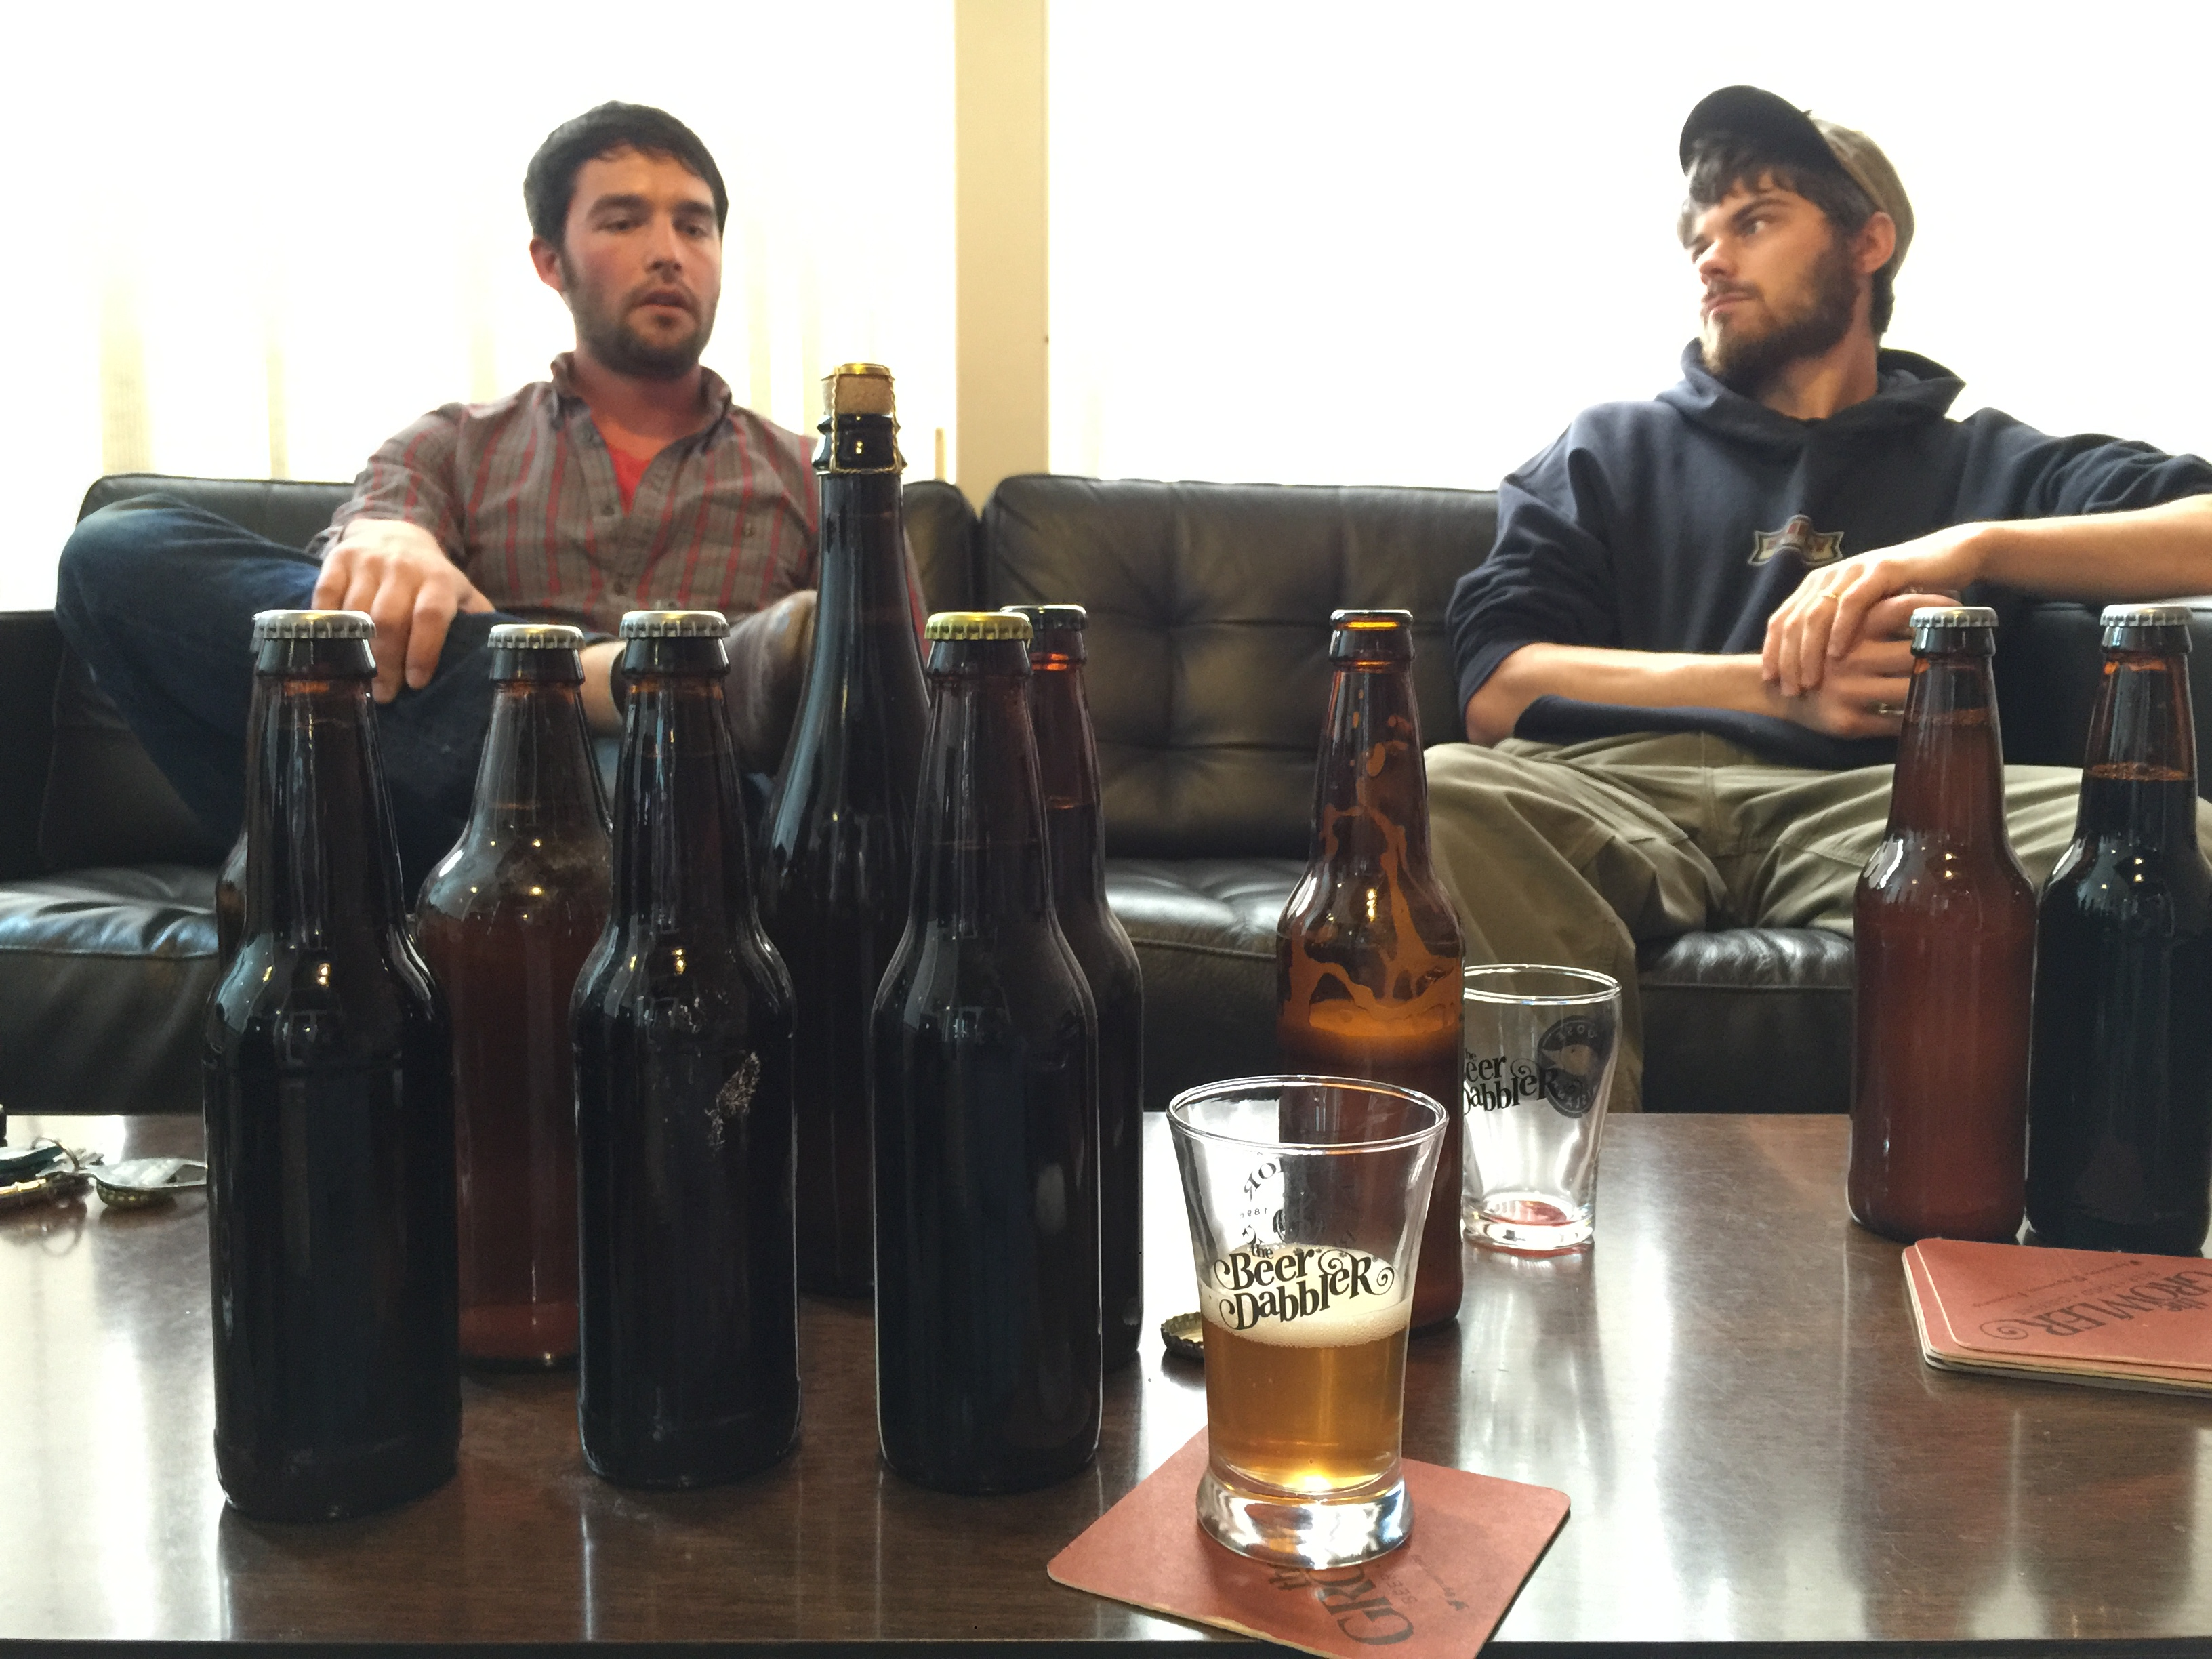 Oakhold founders Levi Loesch, left, and Caleb Levar sample some of their beers at The Growler editorial office // Photo by Joseph Alton